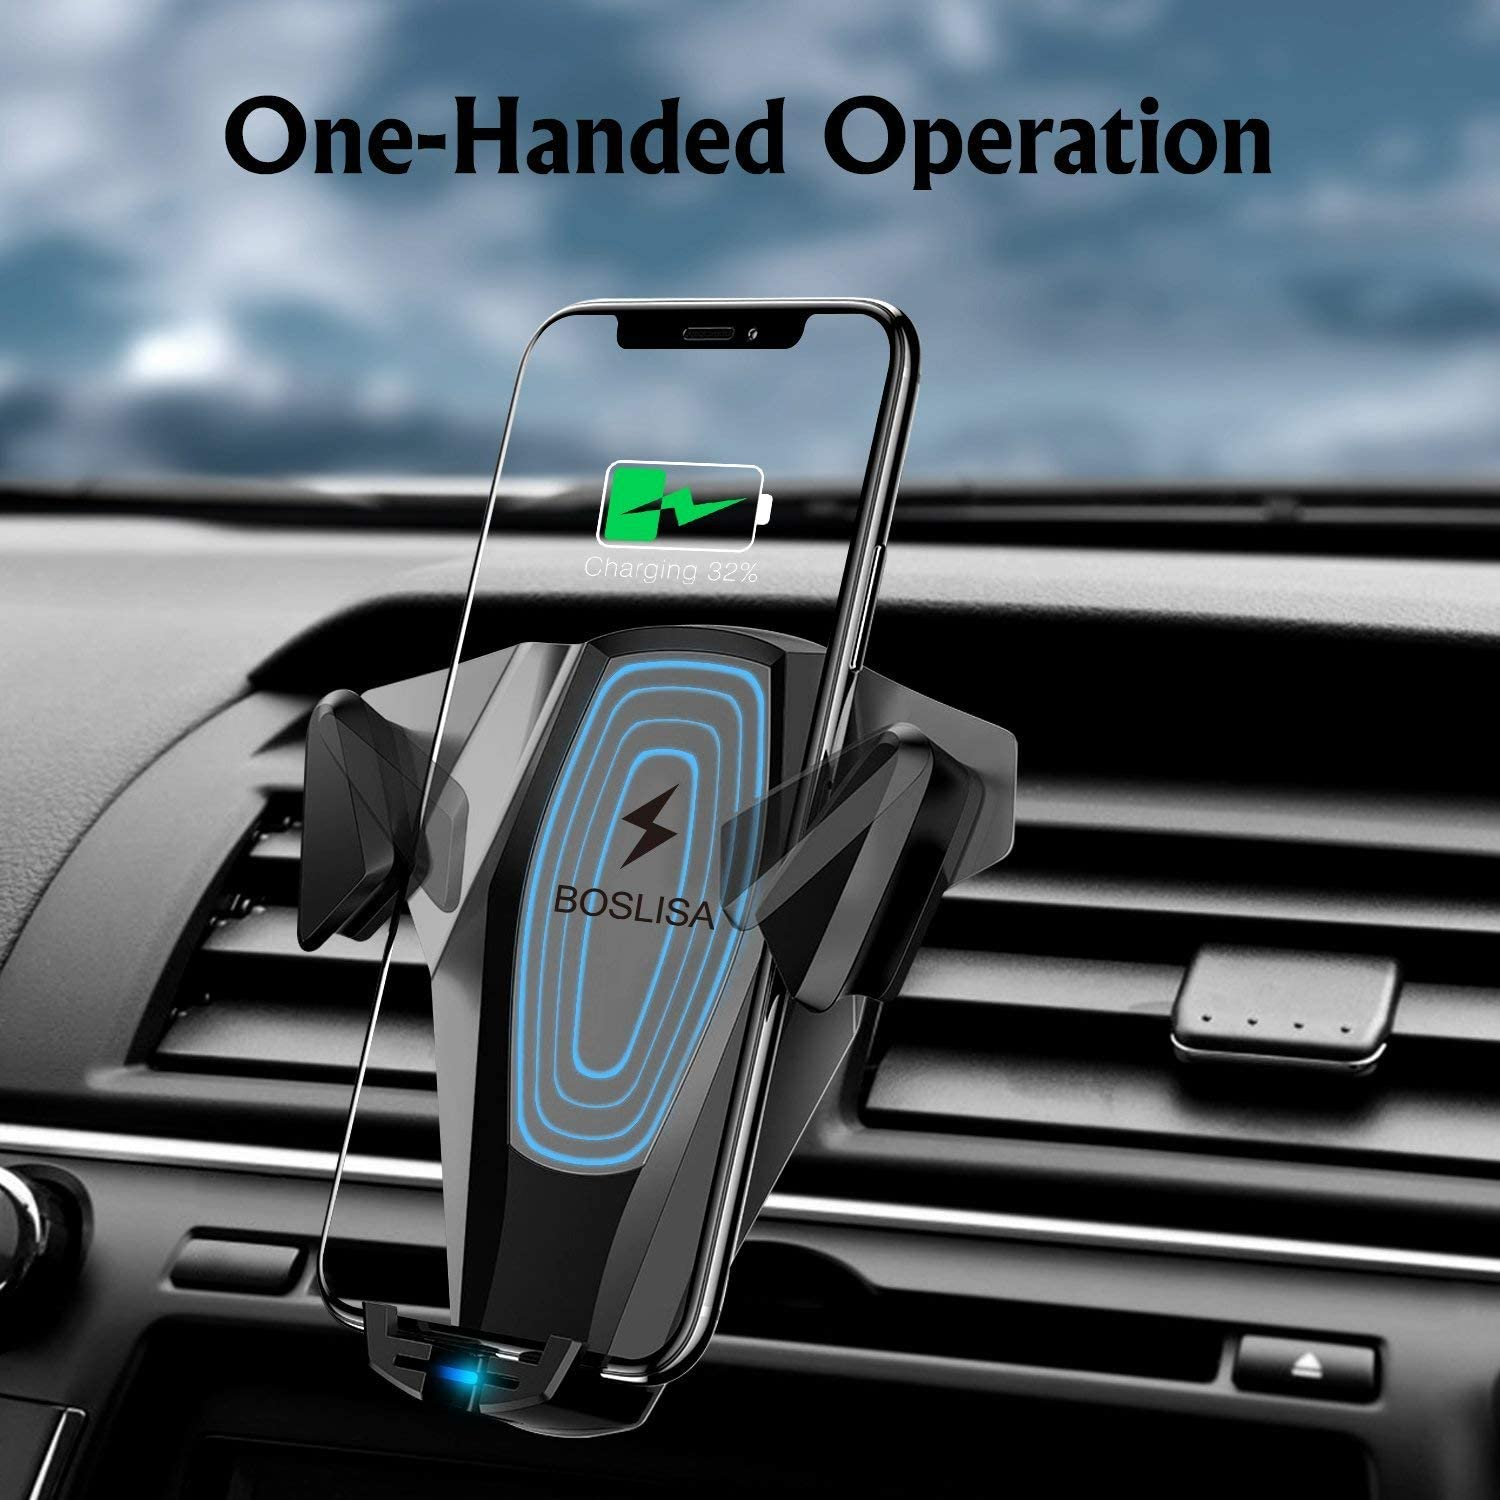 Compatible with iPhone Xs MAX//Xs//XR//X//8Plus//8 10W Qi Fast Charging Air Vent Phone Holder Compatible with S10Plus//S10//S9Plus//S9//S8Plus//S8 etc. Car Mount Gorilla Gadgets Wireless Car Charger